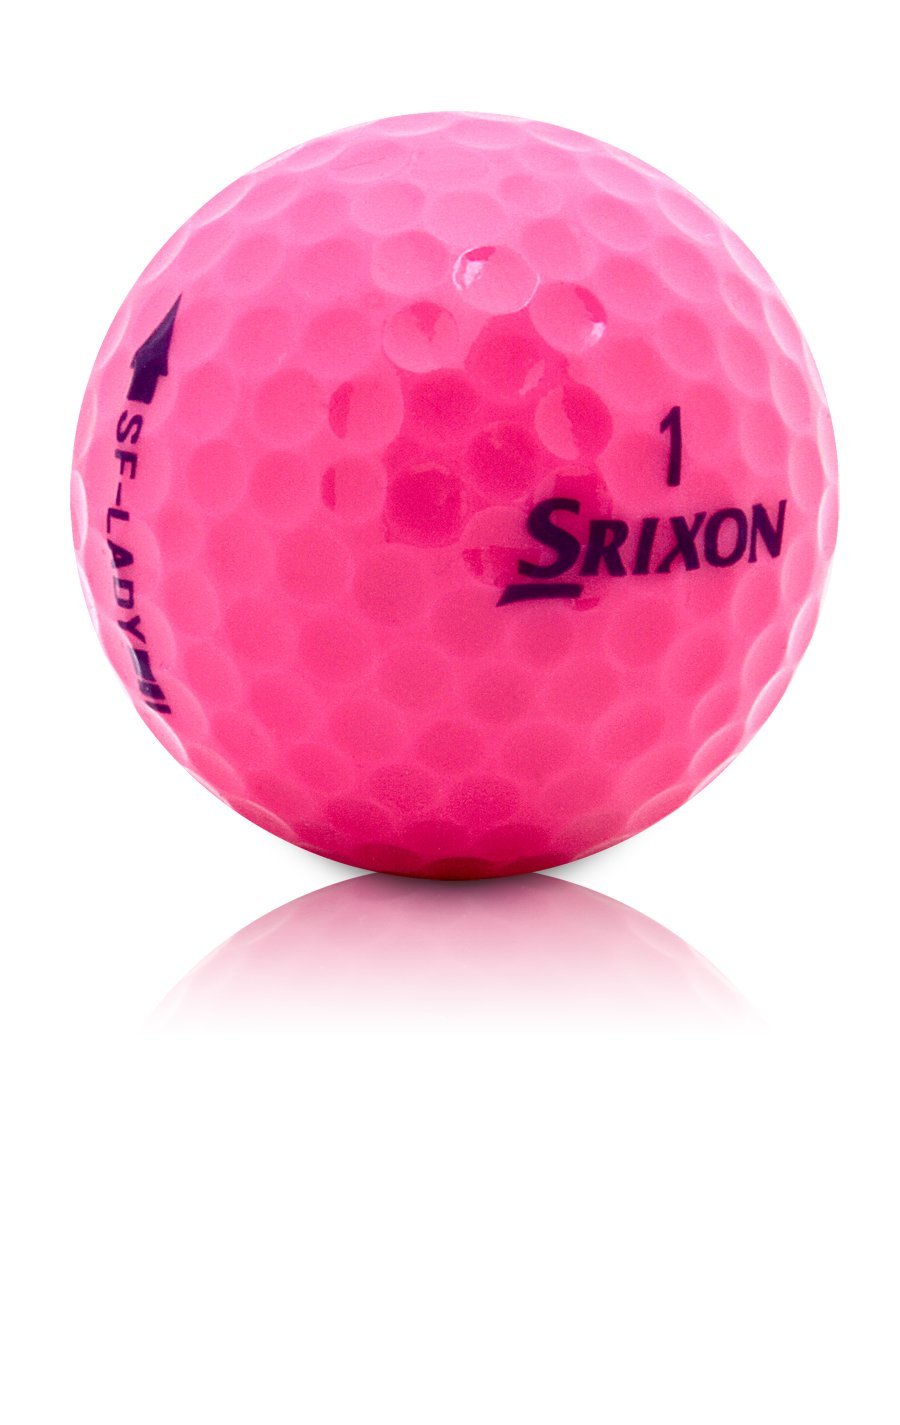 Srixon Ladies Soft Feel Golf Ball  (Passion Pink, 12pieces) by Srixon (Image #2)